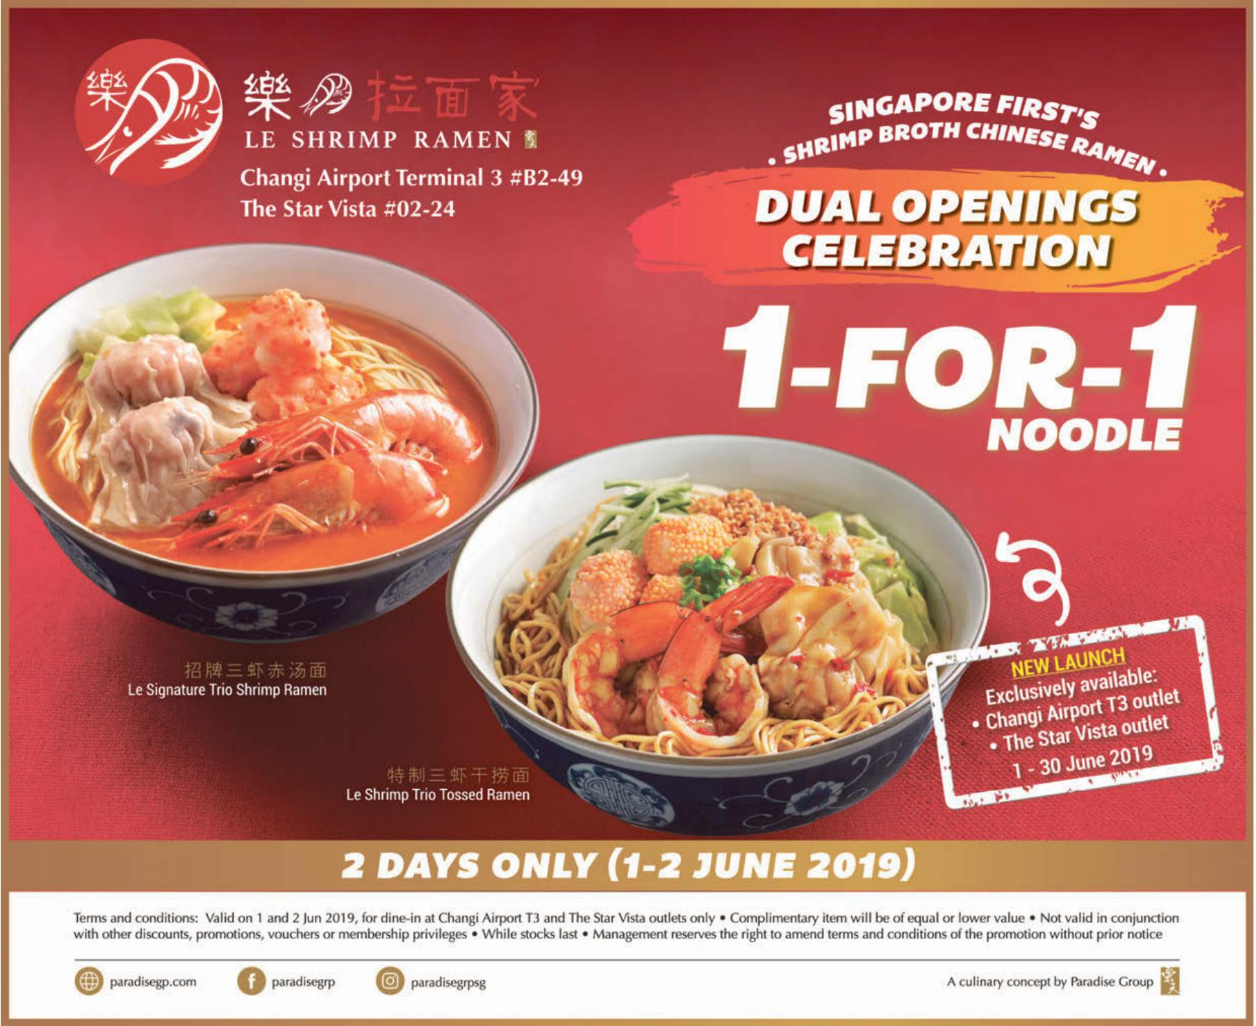 Paradise Group celebrates dual openings of Le Shrimp Ramen with 1-for-1 promotion on 1 & 2 Jun 2019